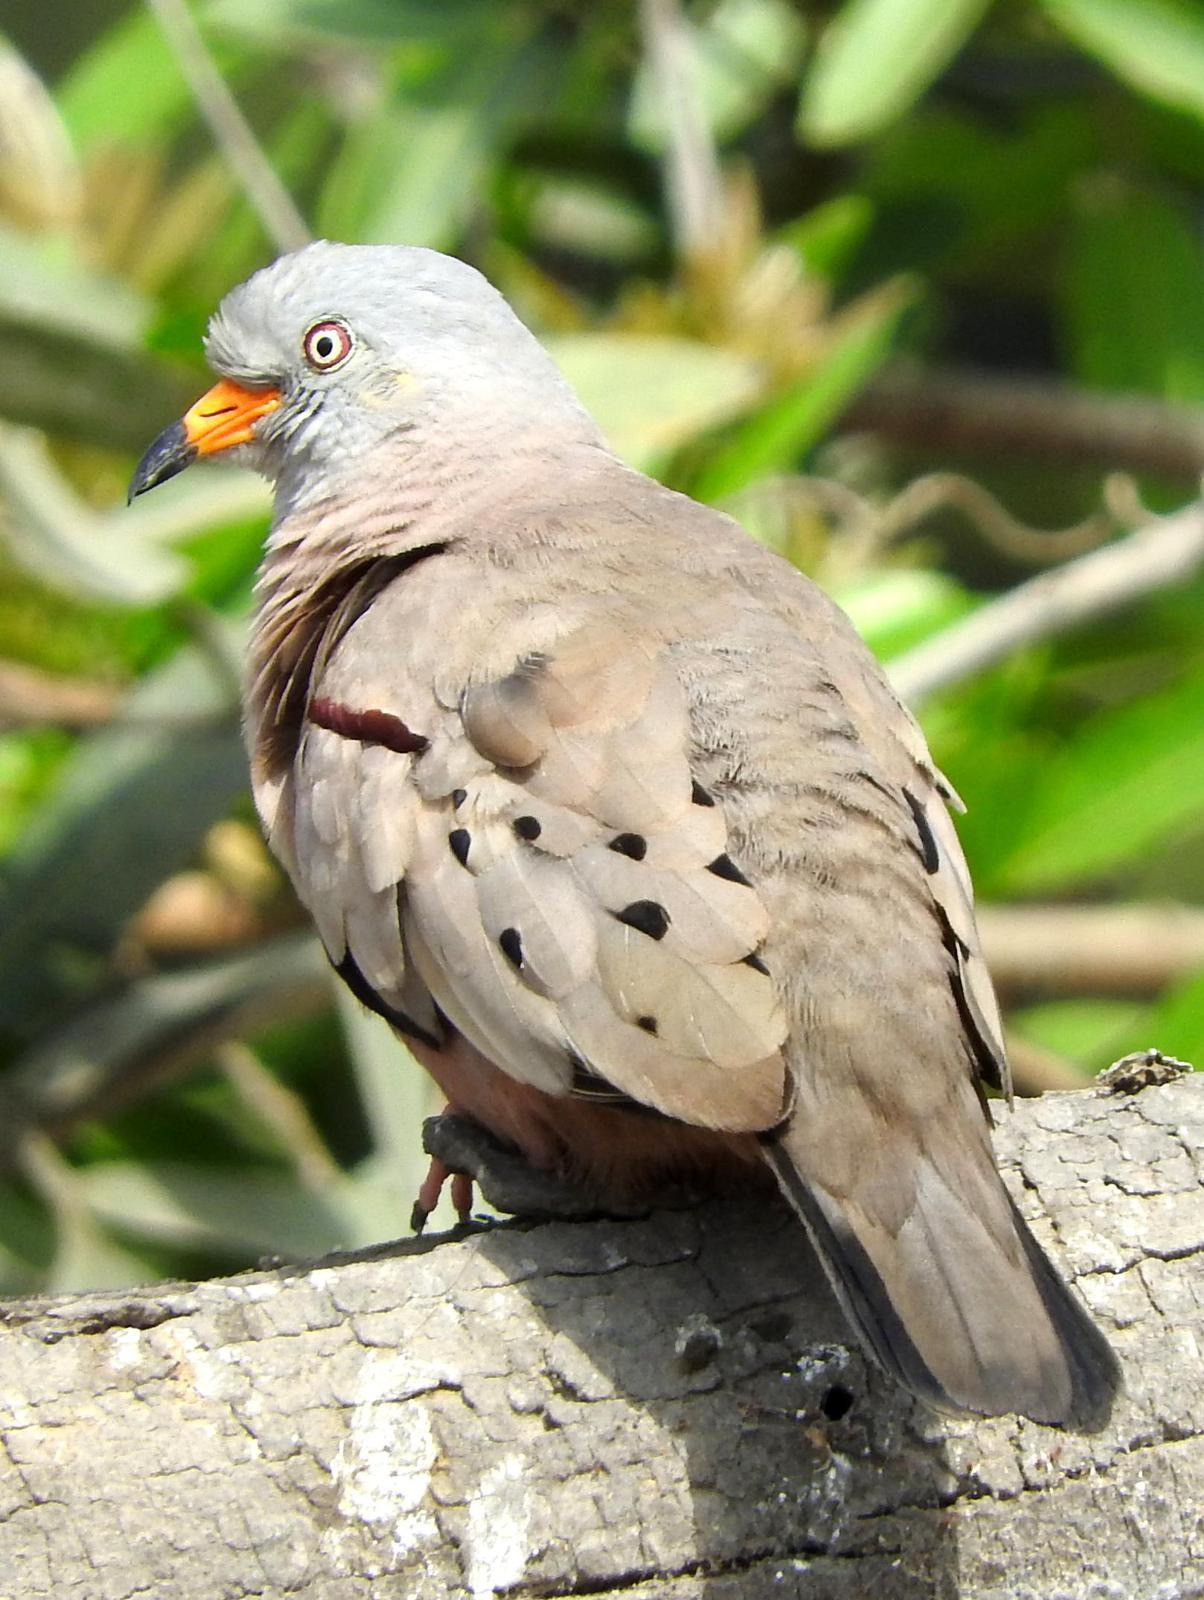 Croaking Ground-Dove Photo by Todd A. Watkins